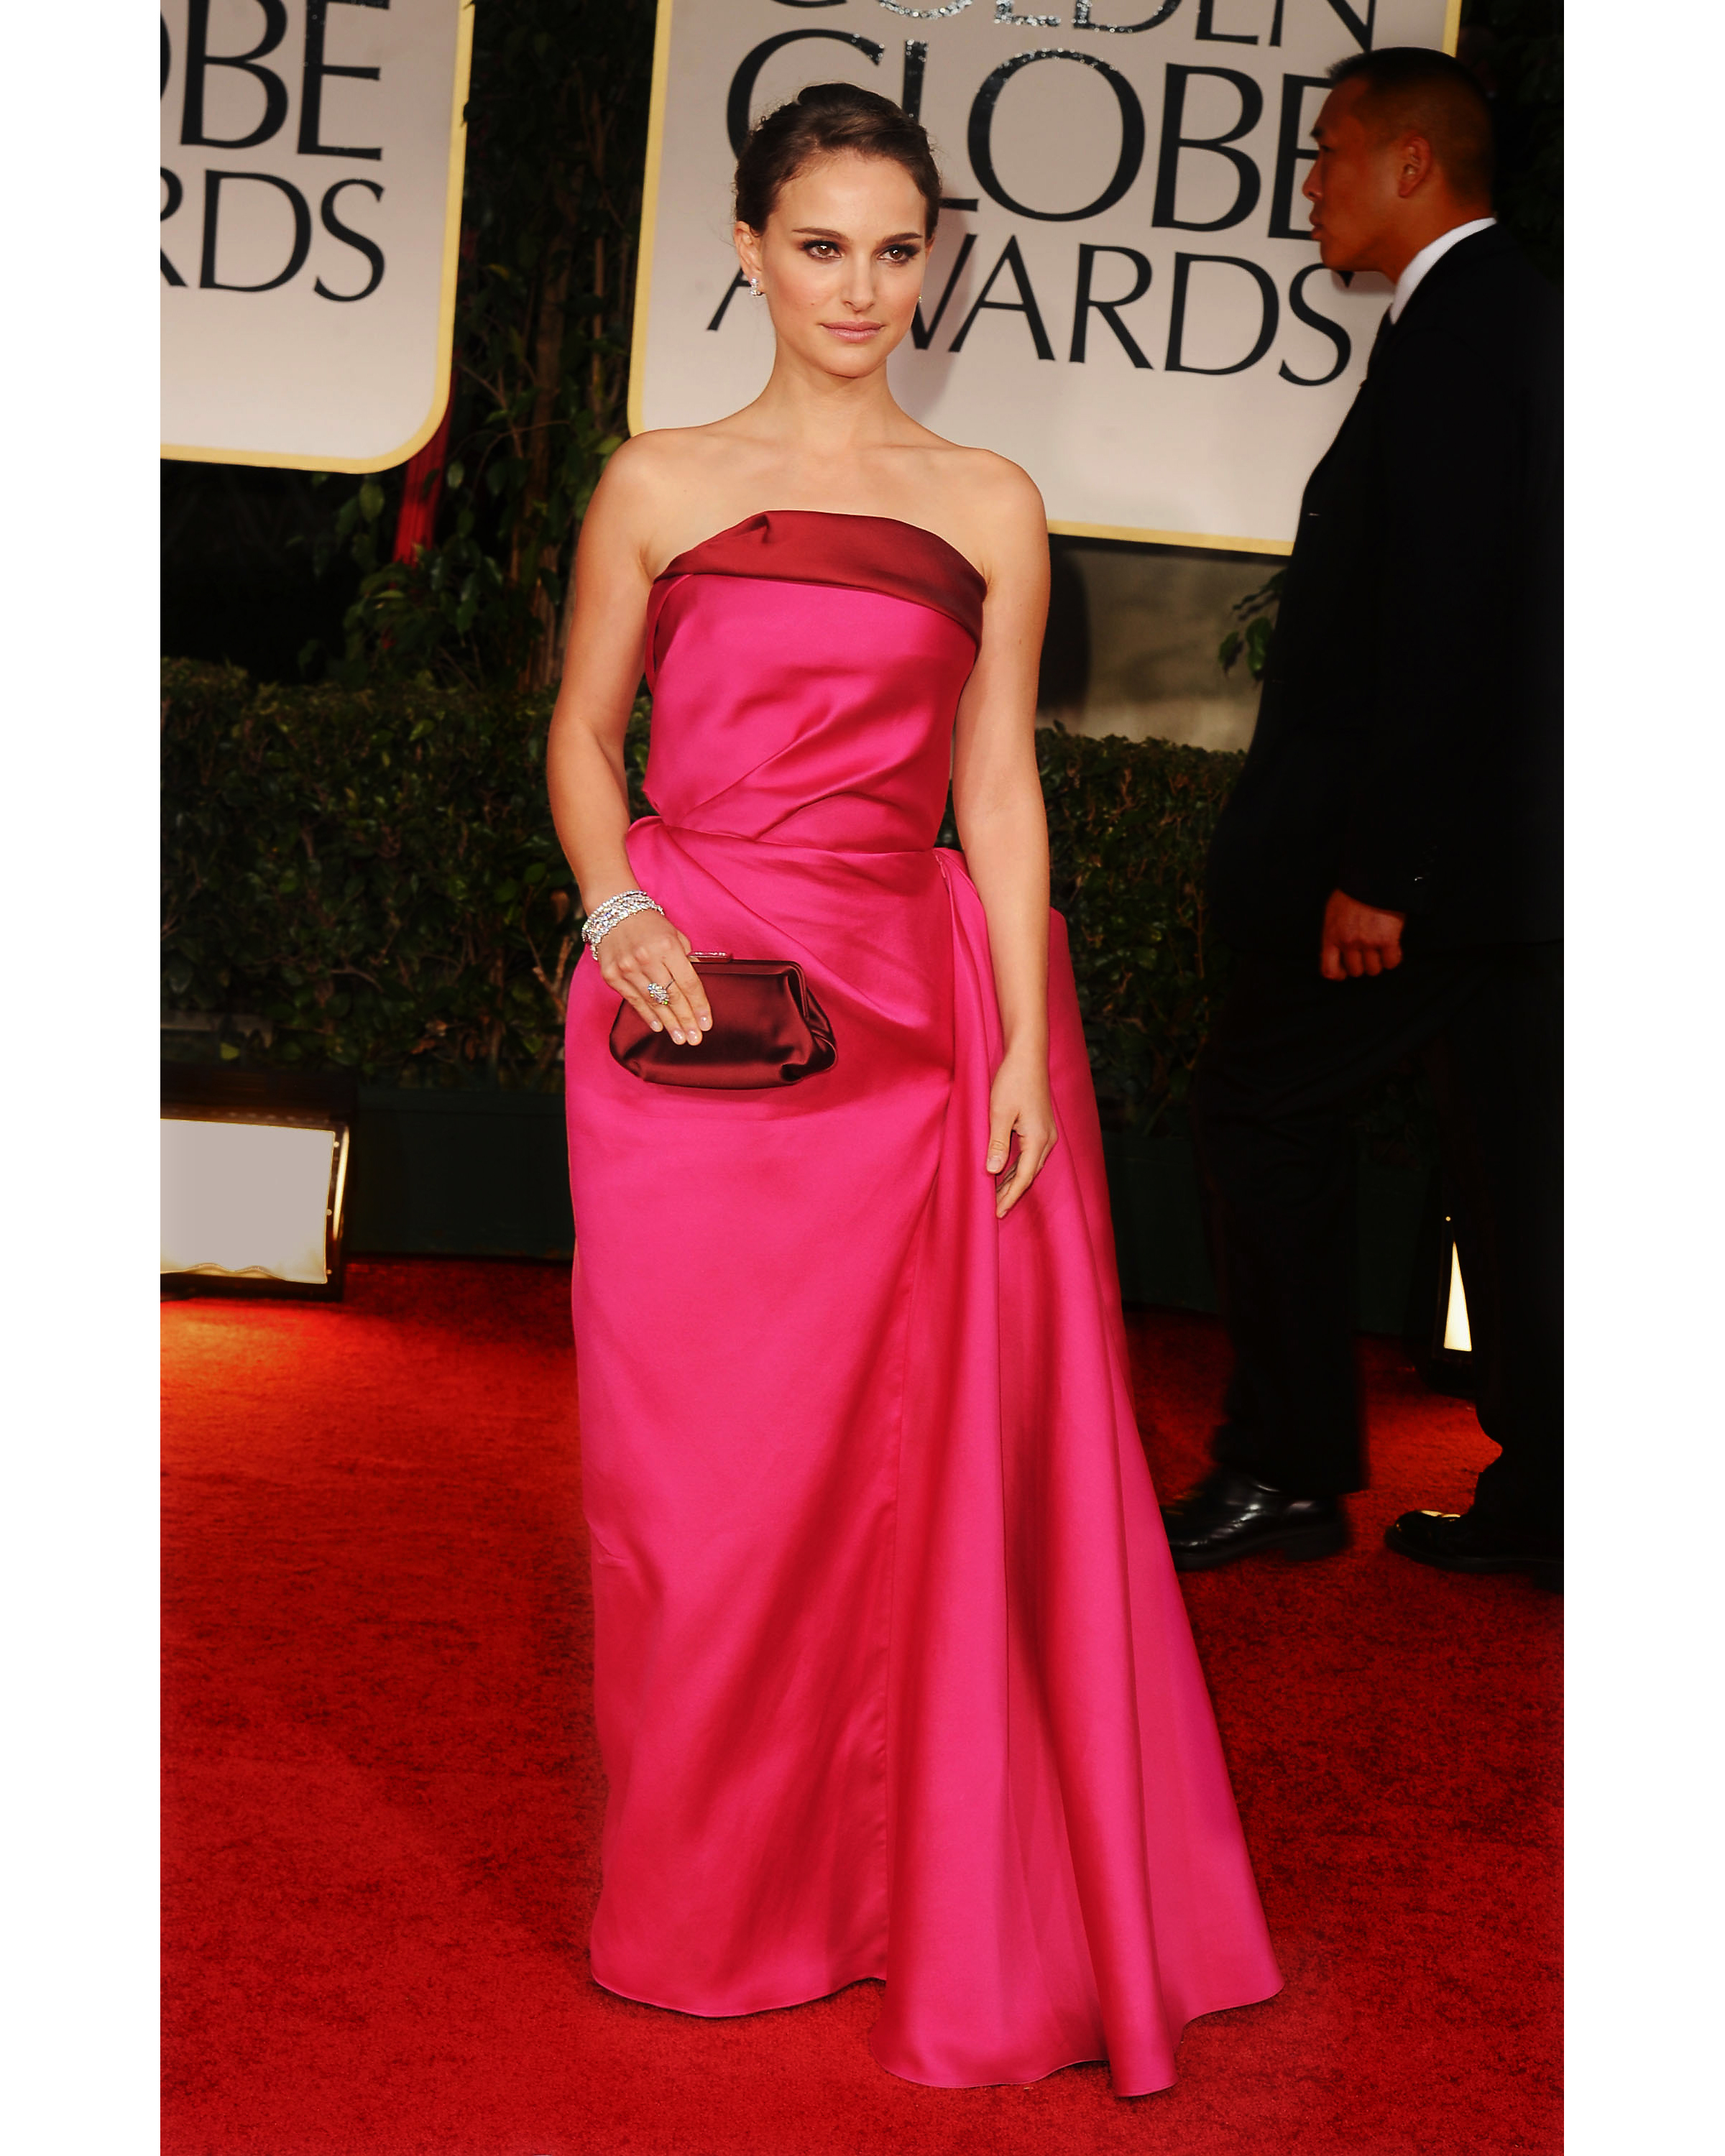 NATALIE PORTMAN AT THE 2012 GOLDEN GLOBE AWARDS